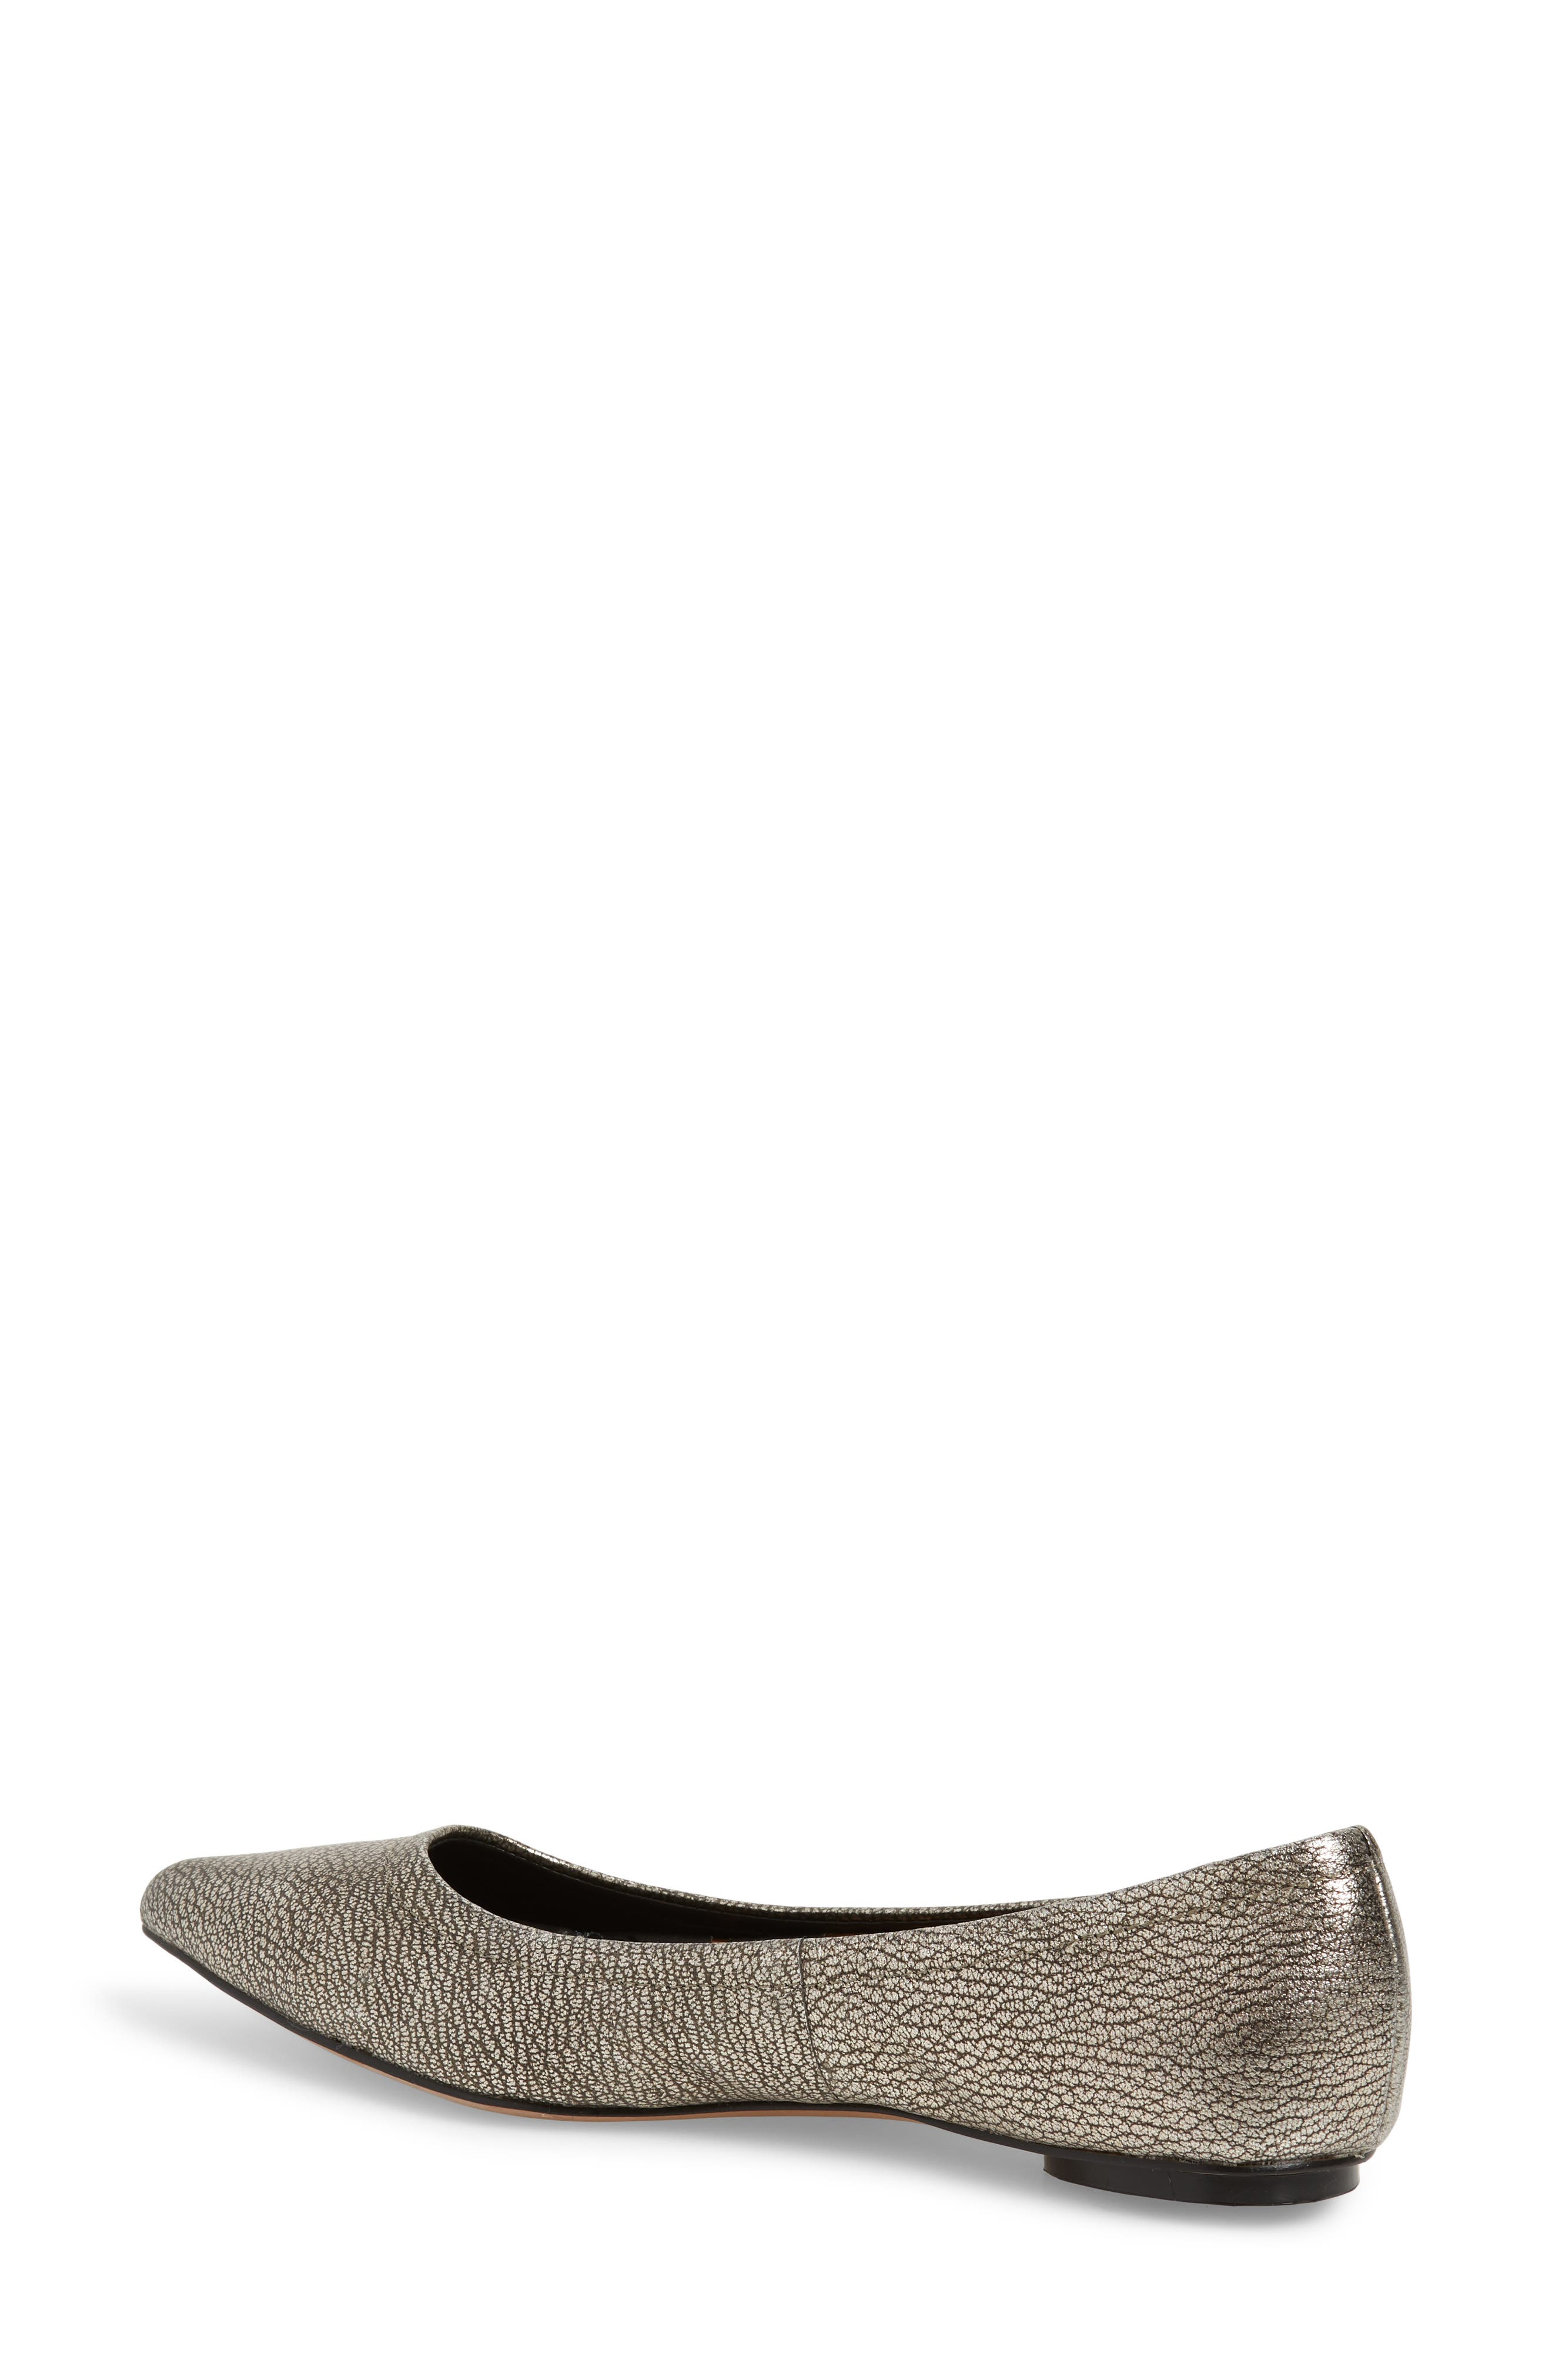 LINEA PAOLO, Nico Pointy Toe Flat, Alternate thumbnail 2, color, ANTHRACITE LEATHER